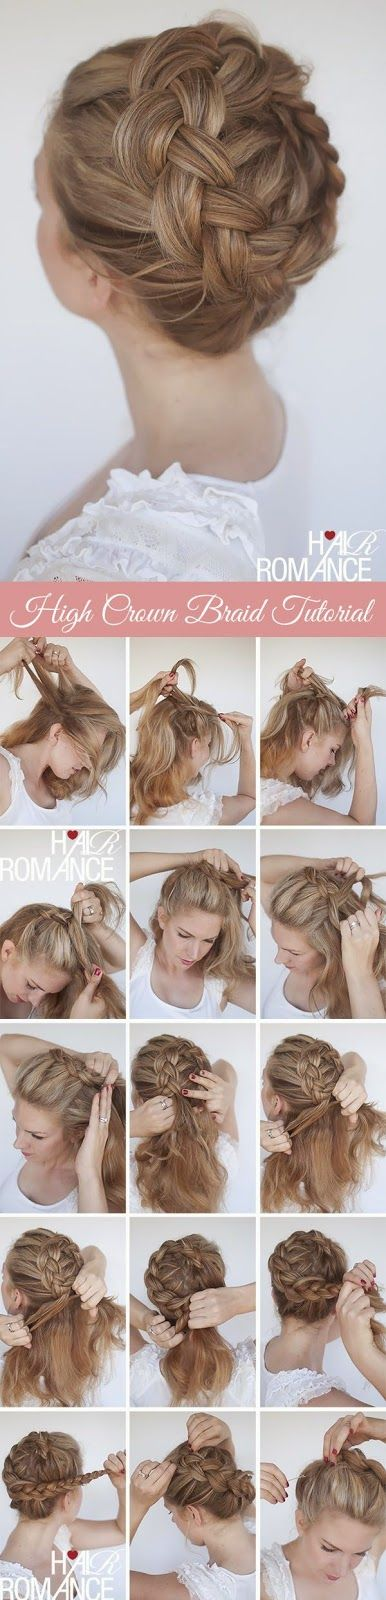 motivational trends: hairstyle tips and ideas